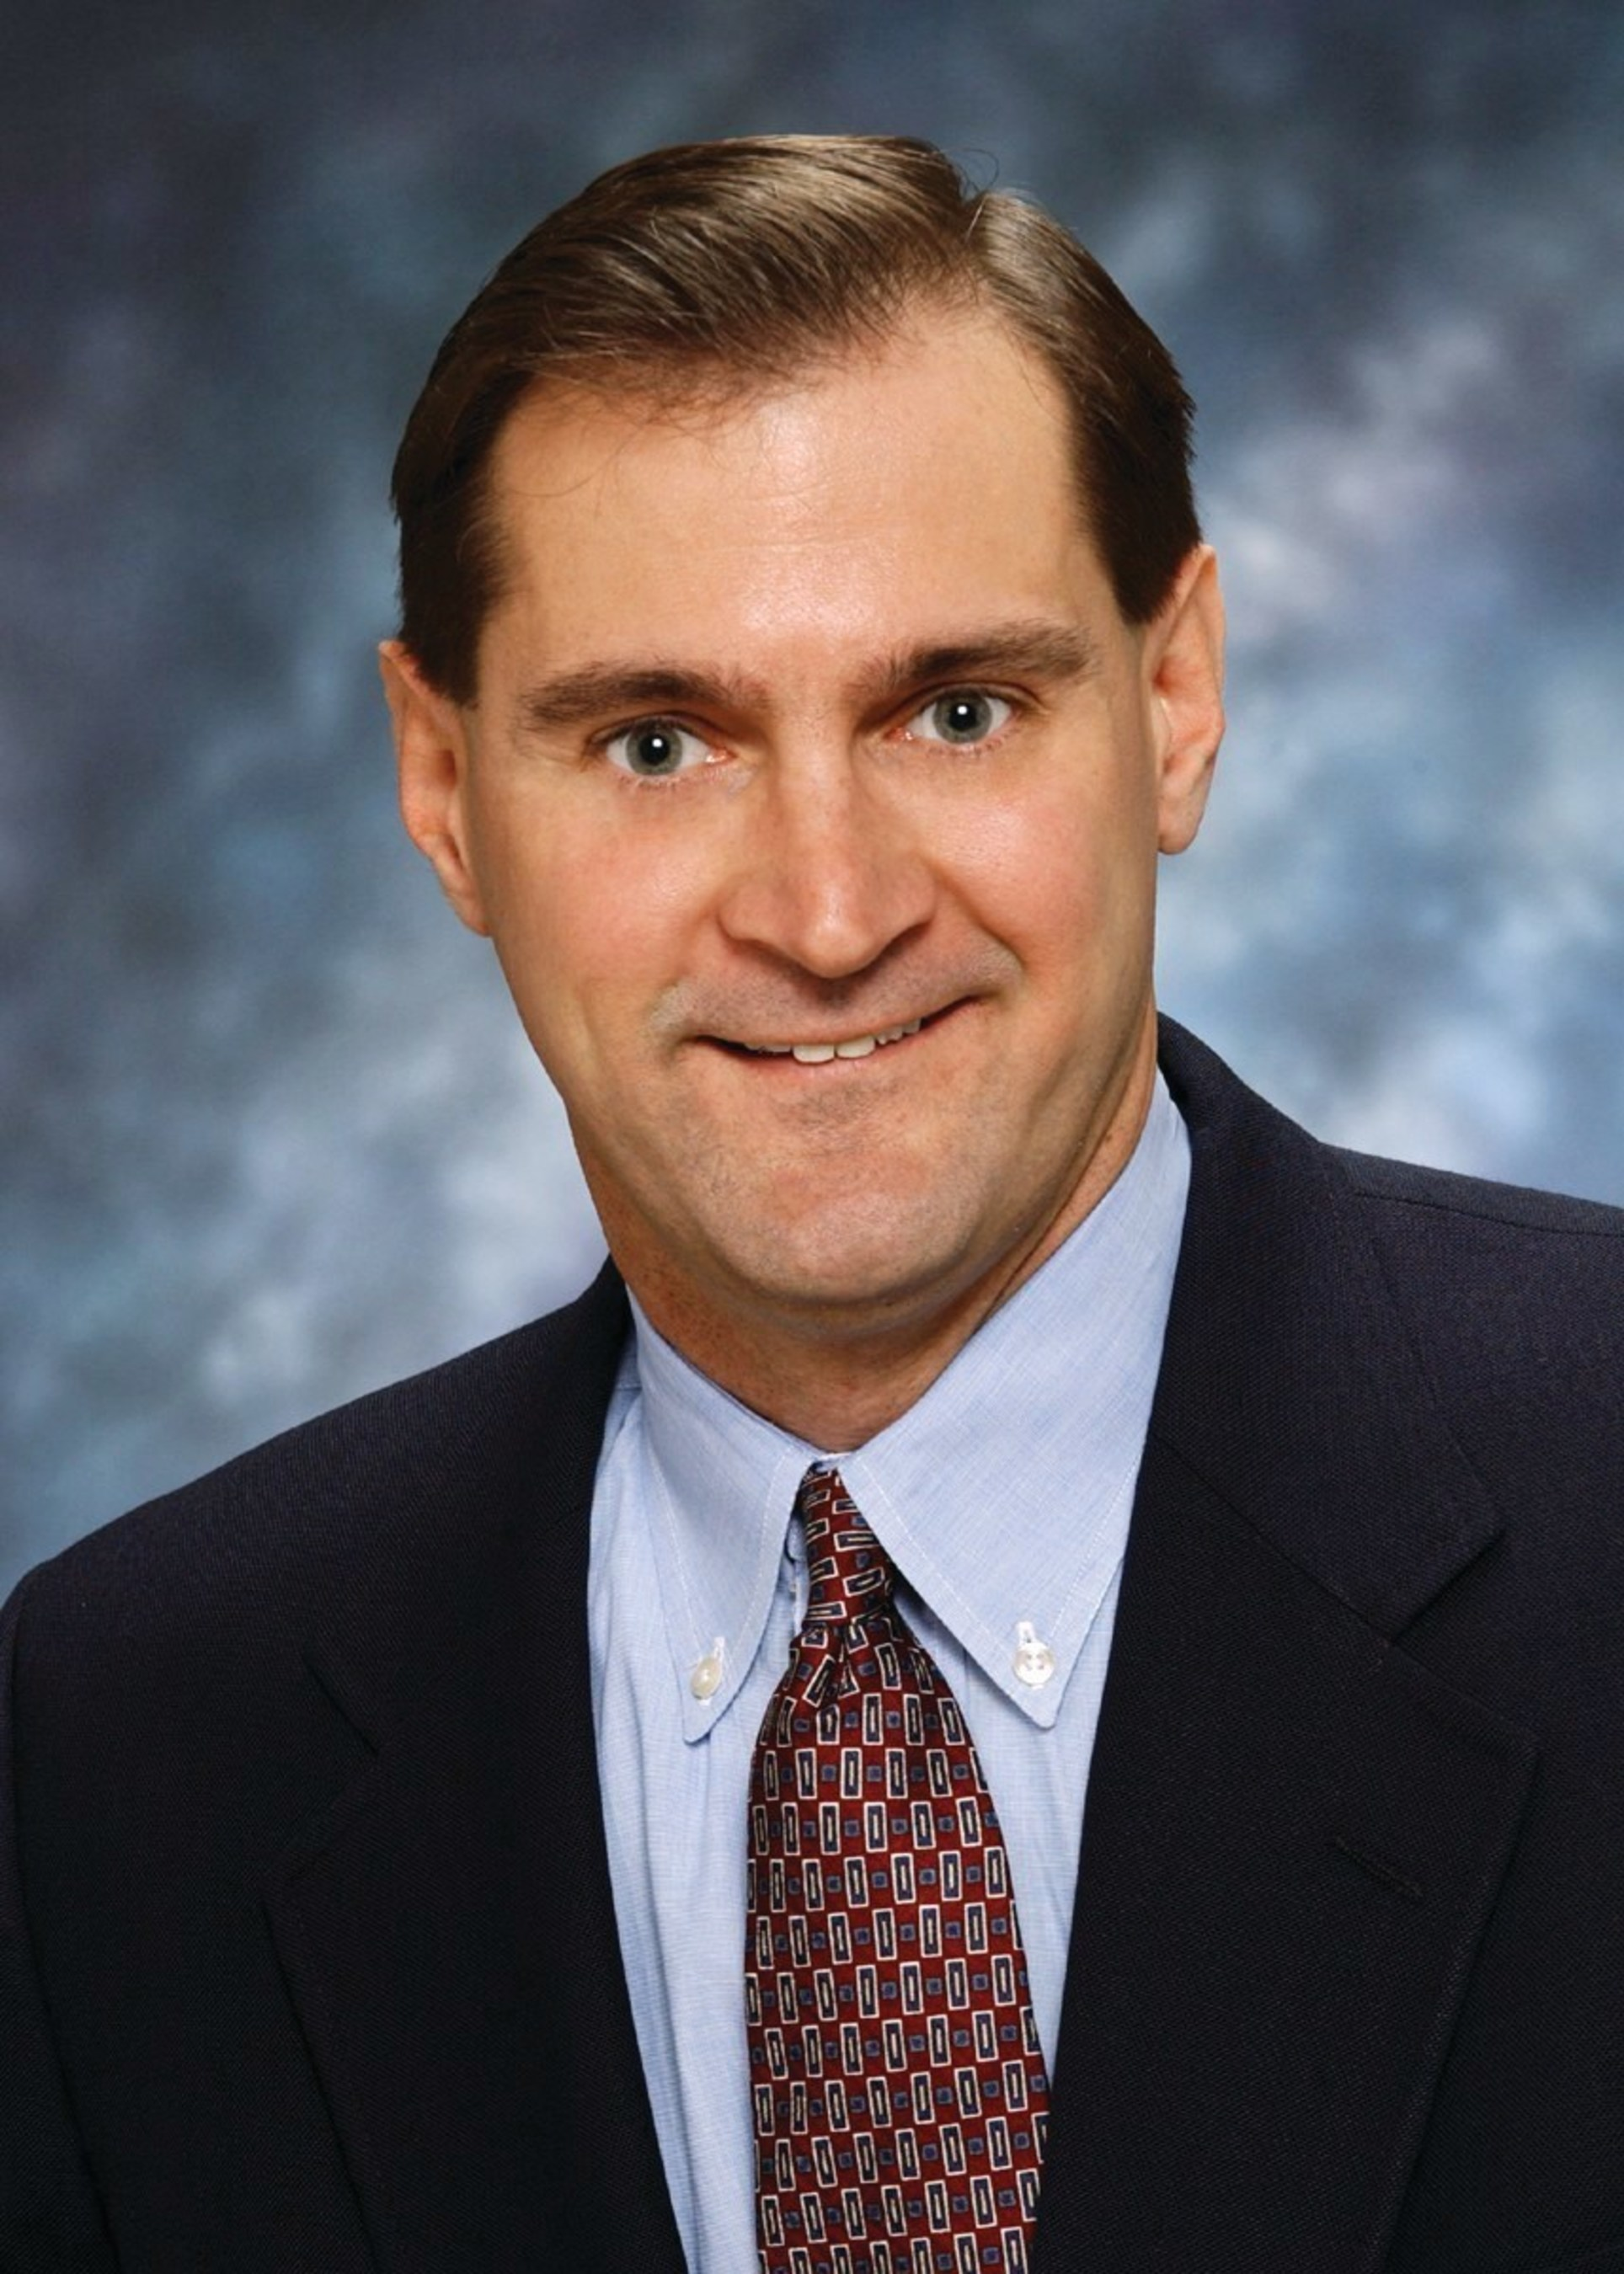 Gregory S. Tornquist, Chairman of the Board, President and CEO of Cenlar FSB